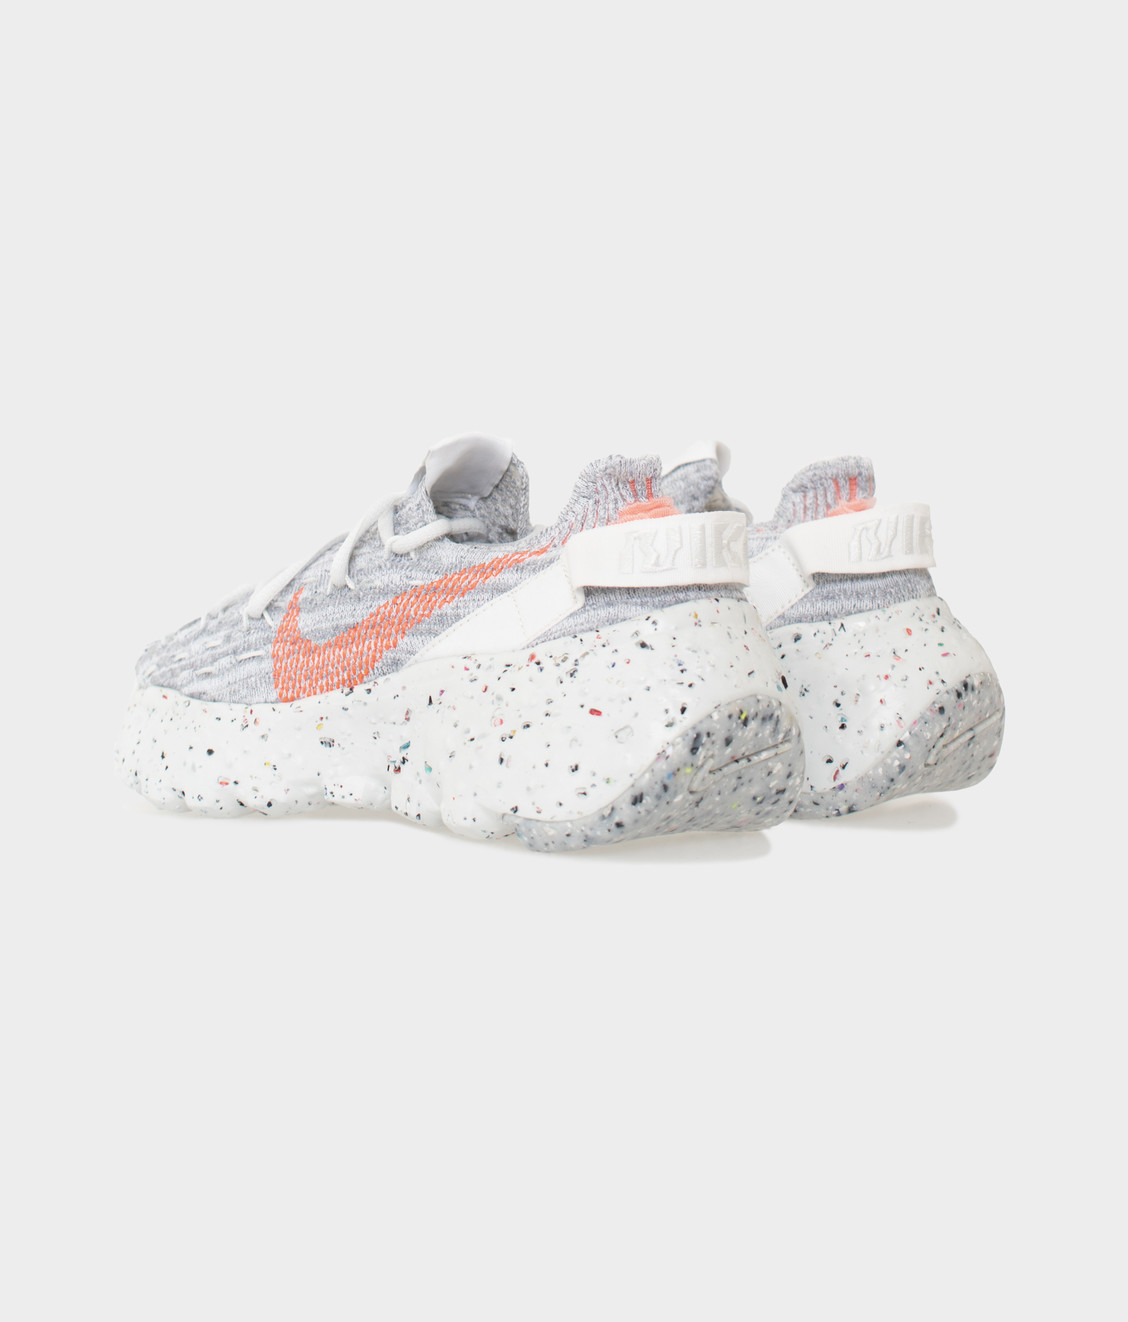 Nike Nike Space Hippie 04 Crimson Grey